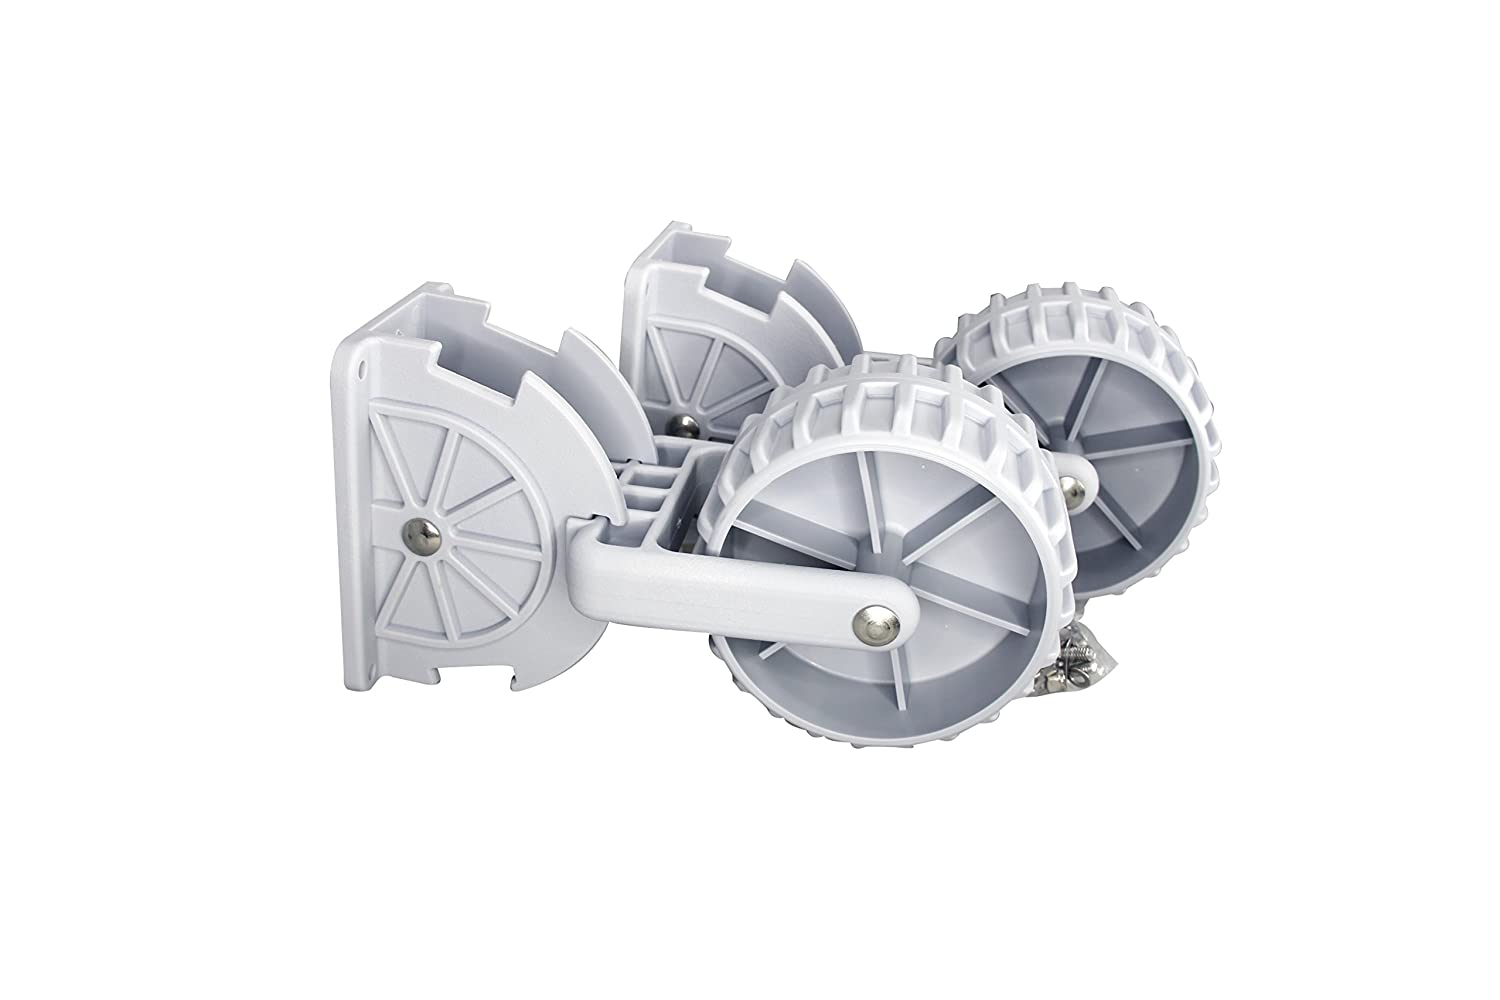 Pactrade Marine Flip-up Retrackable Dinghy Wheels Launch Inflatable Boat Dolly